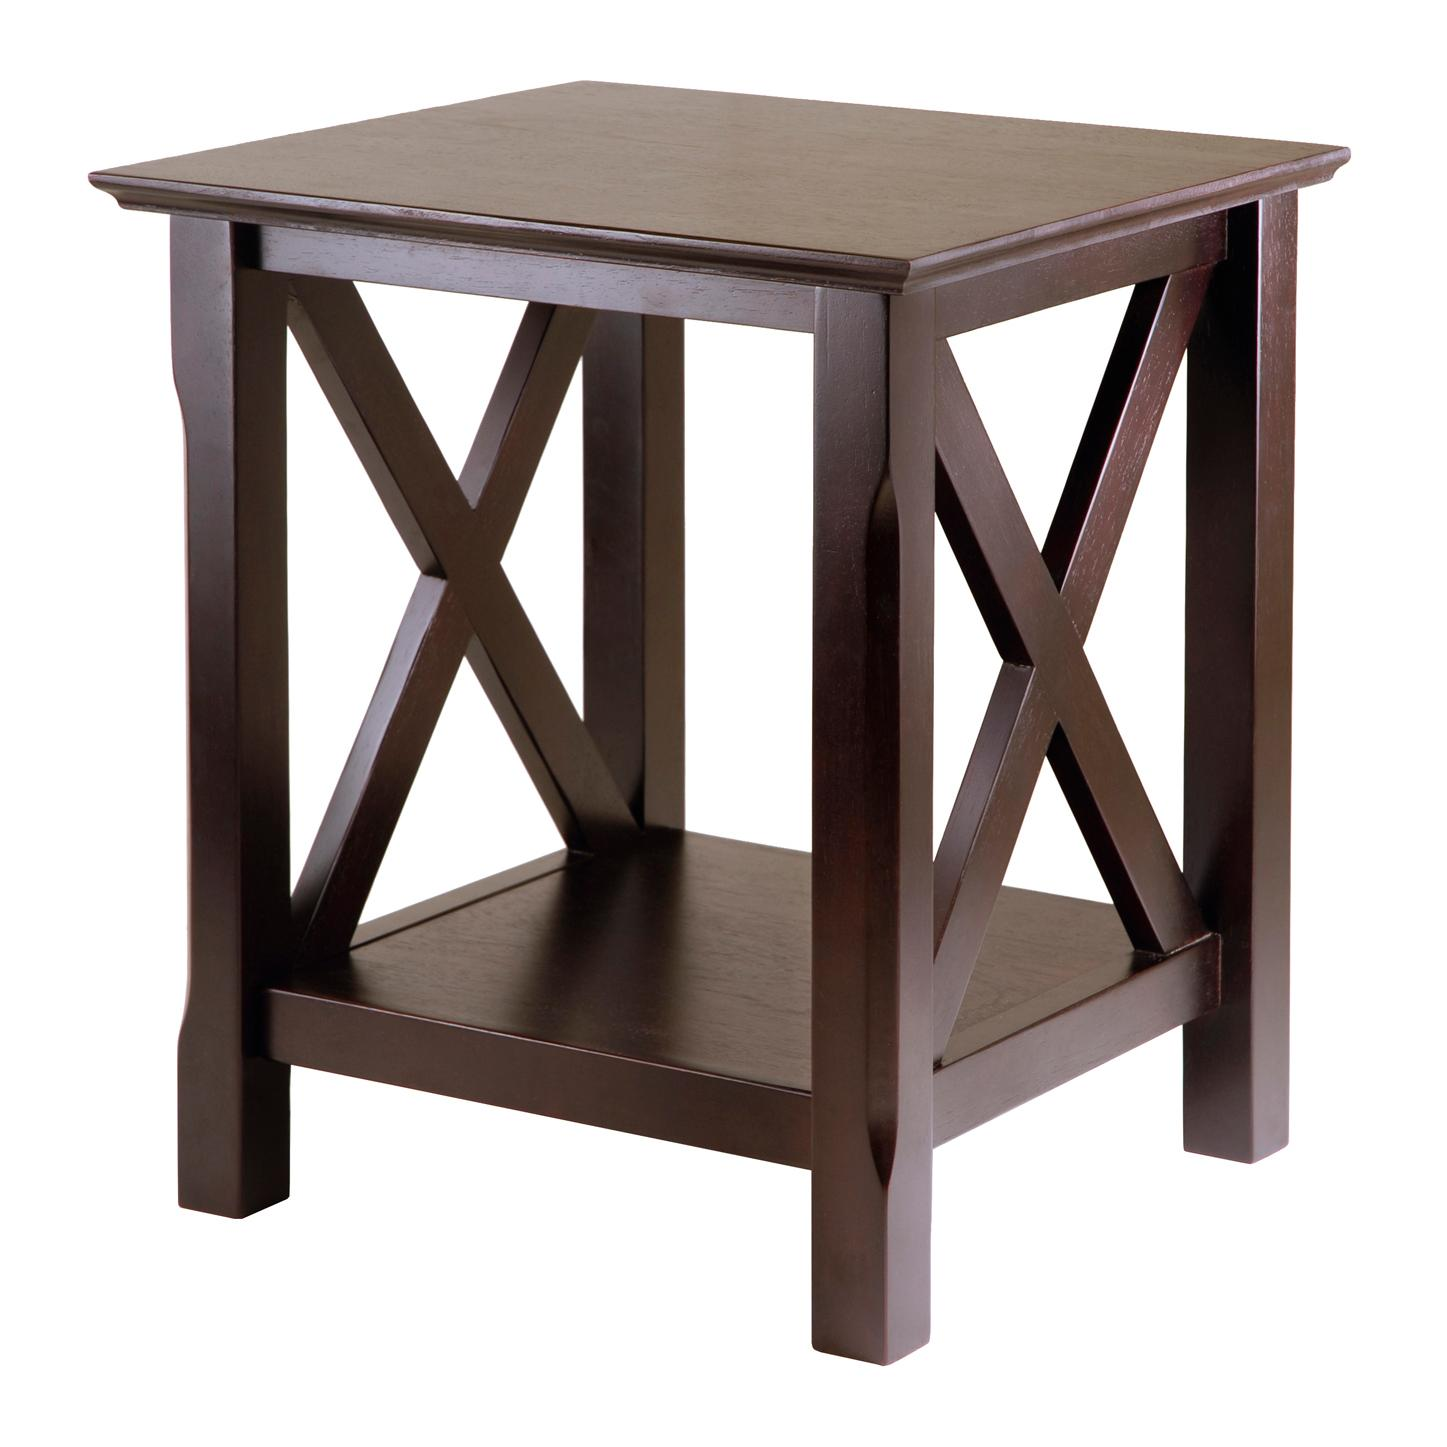 Amazon.com: Winsome Wood Xola End Table: Kitchen & Dining